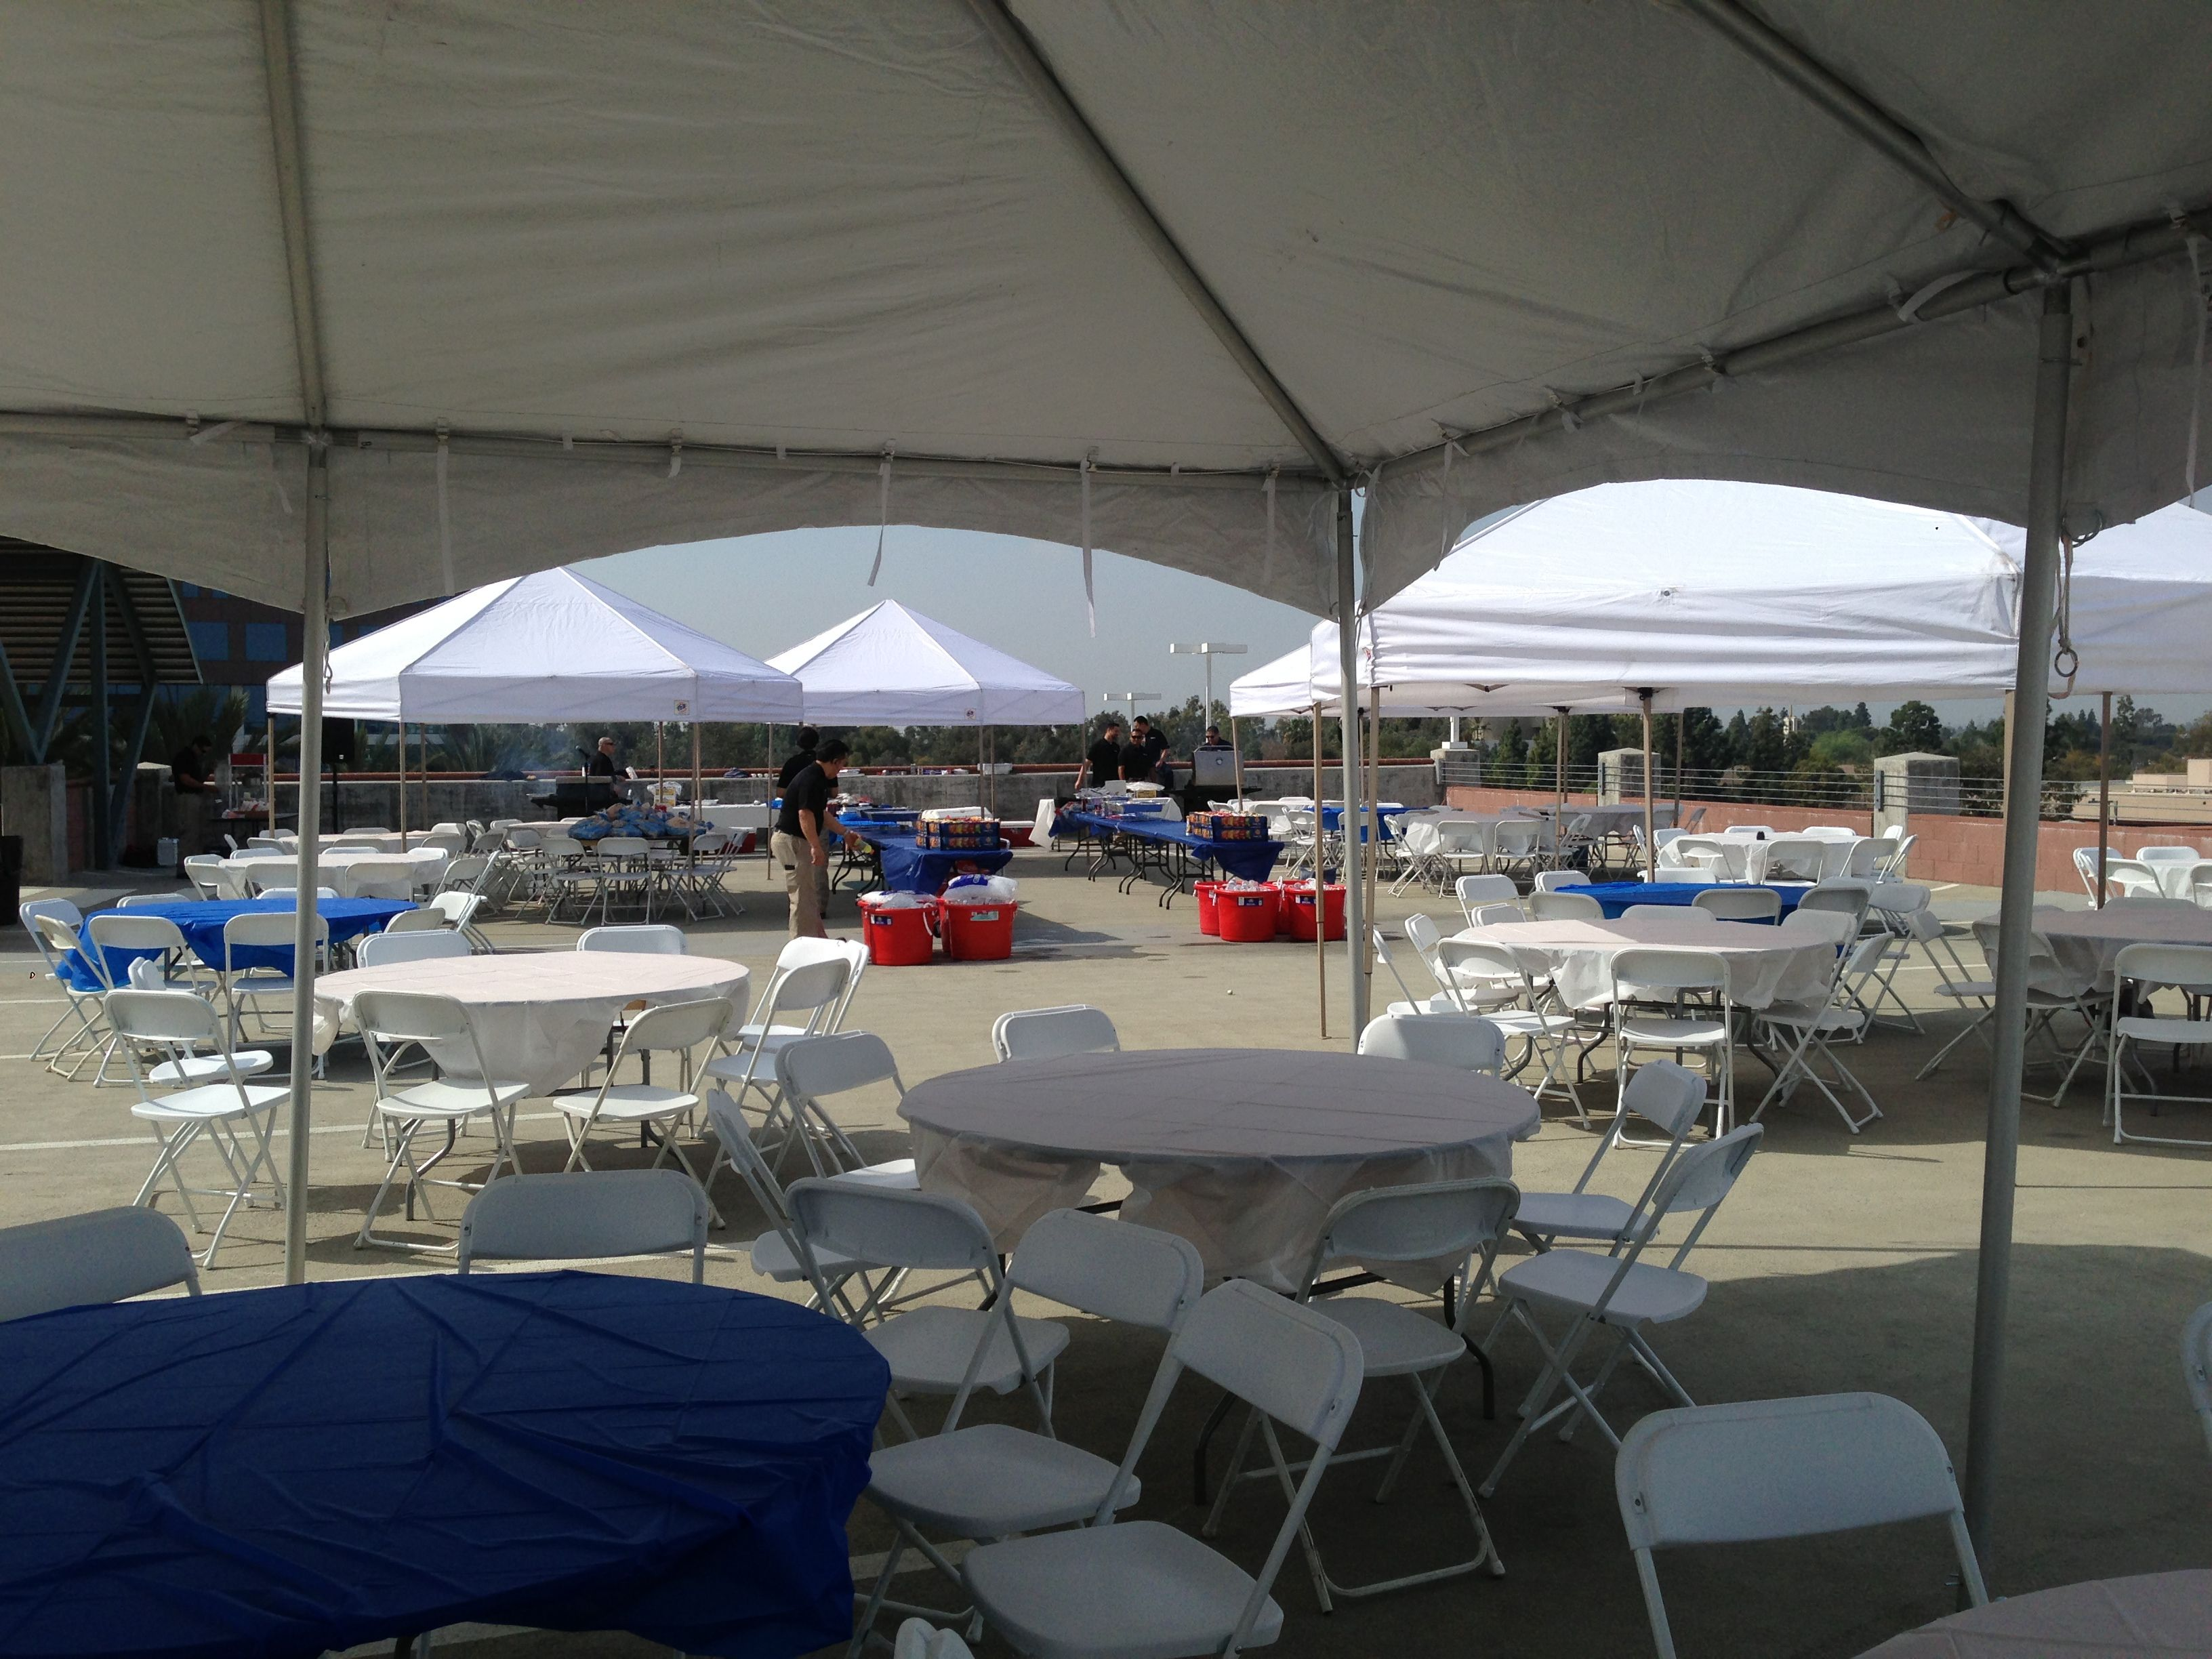 Where Can I Rent Tables And Chairs Tent Rental Tables Chairs And More For Parties And Events In The